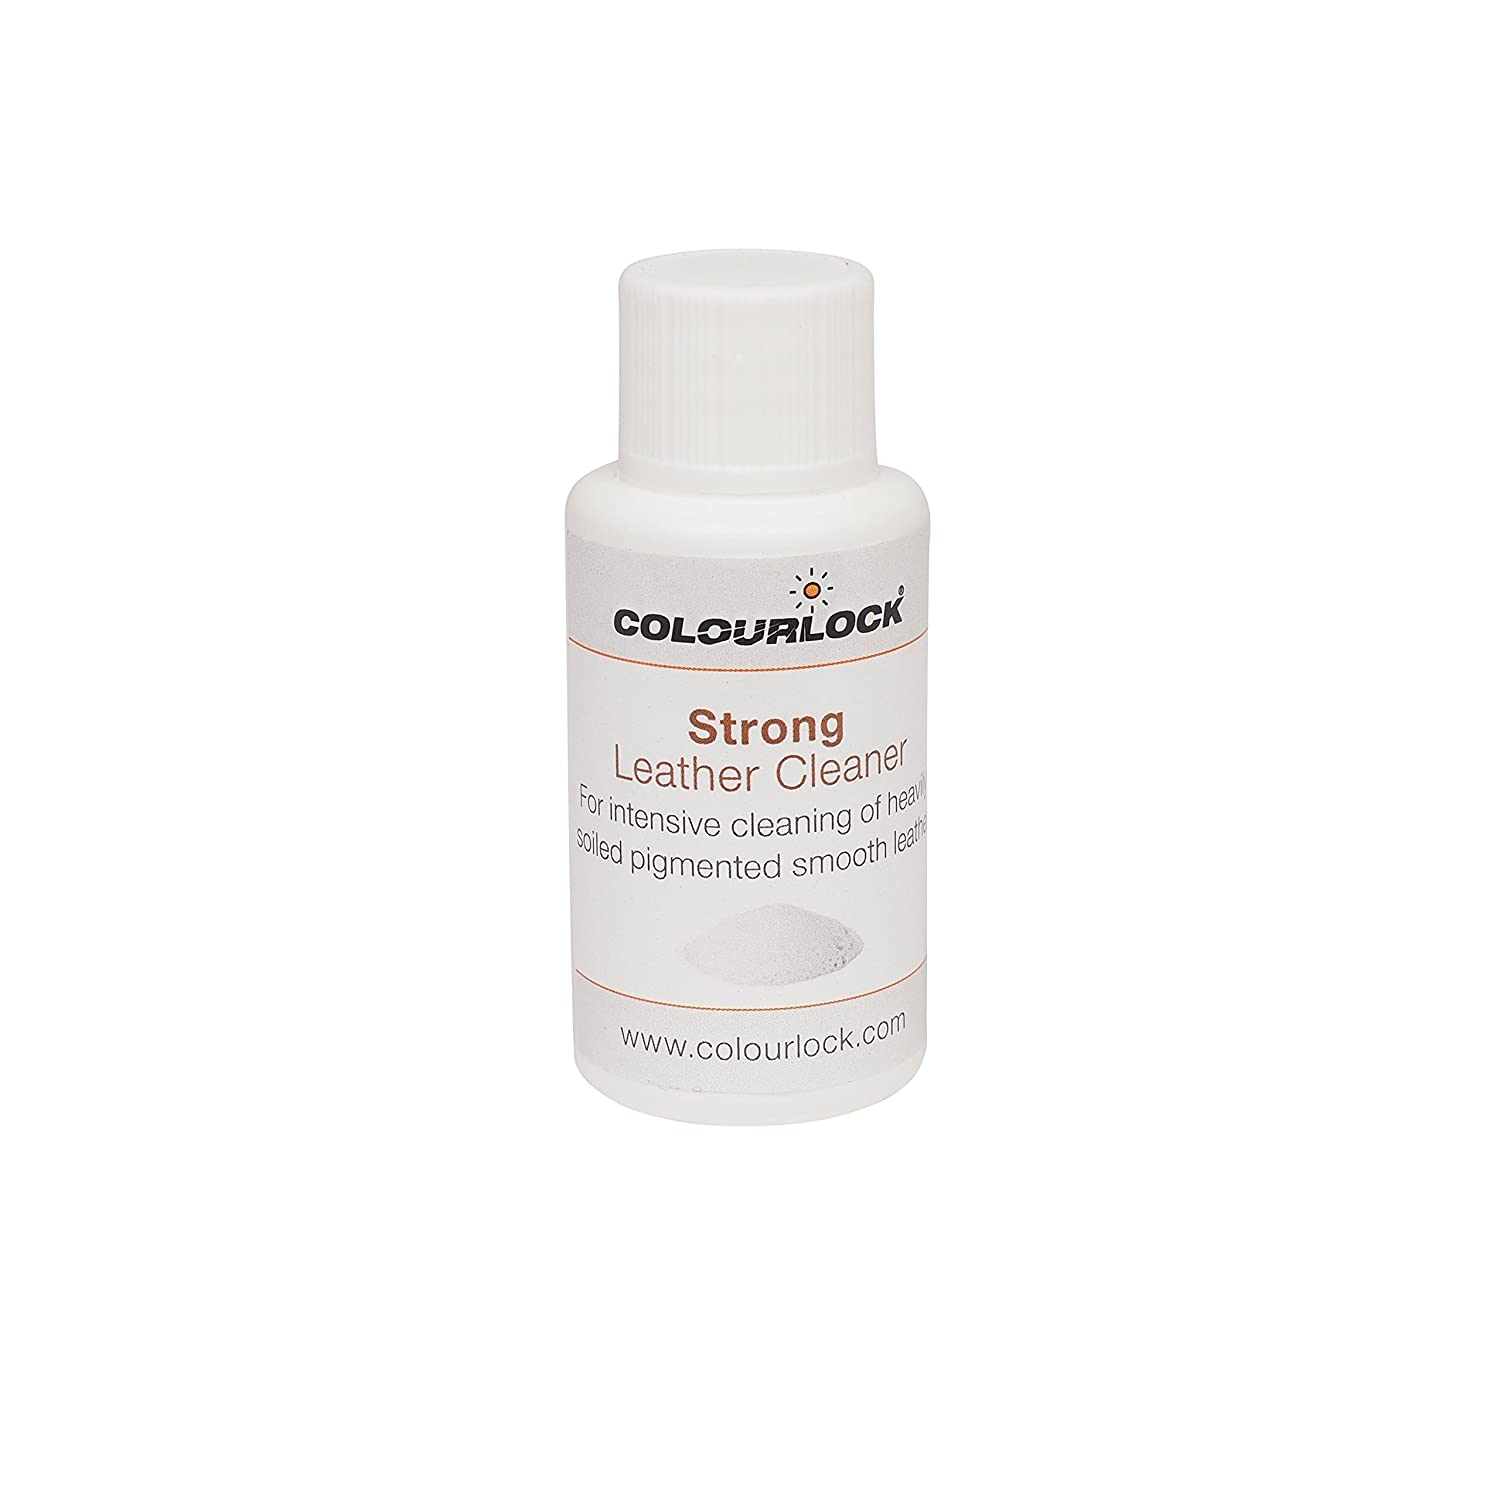 COLOURLOCK Strong Leather Cleaner for Car interiors, furniture upholstery, bags and clothing (30ml)